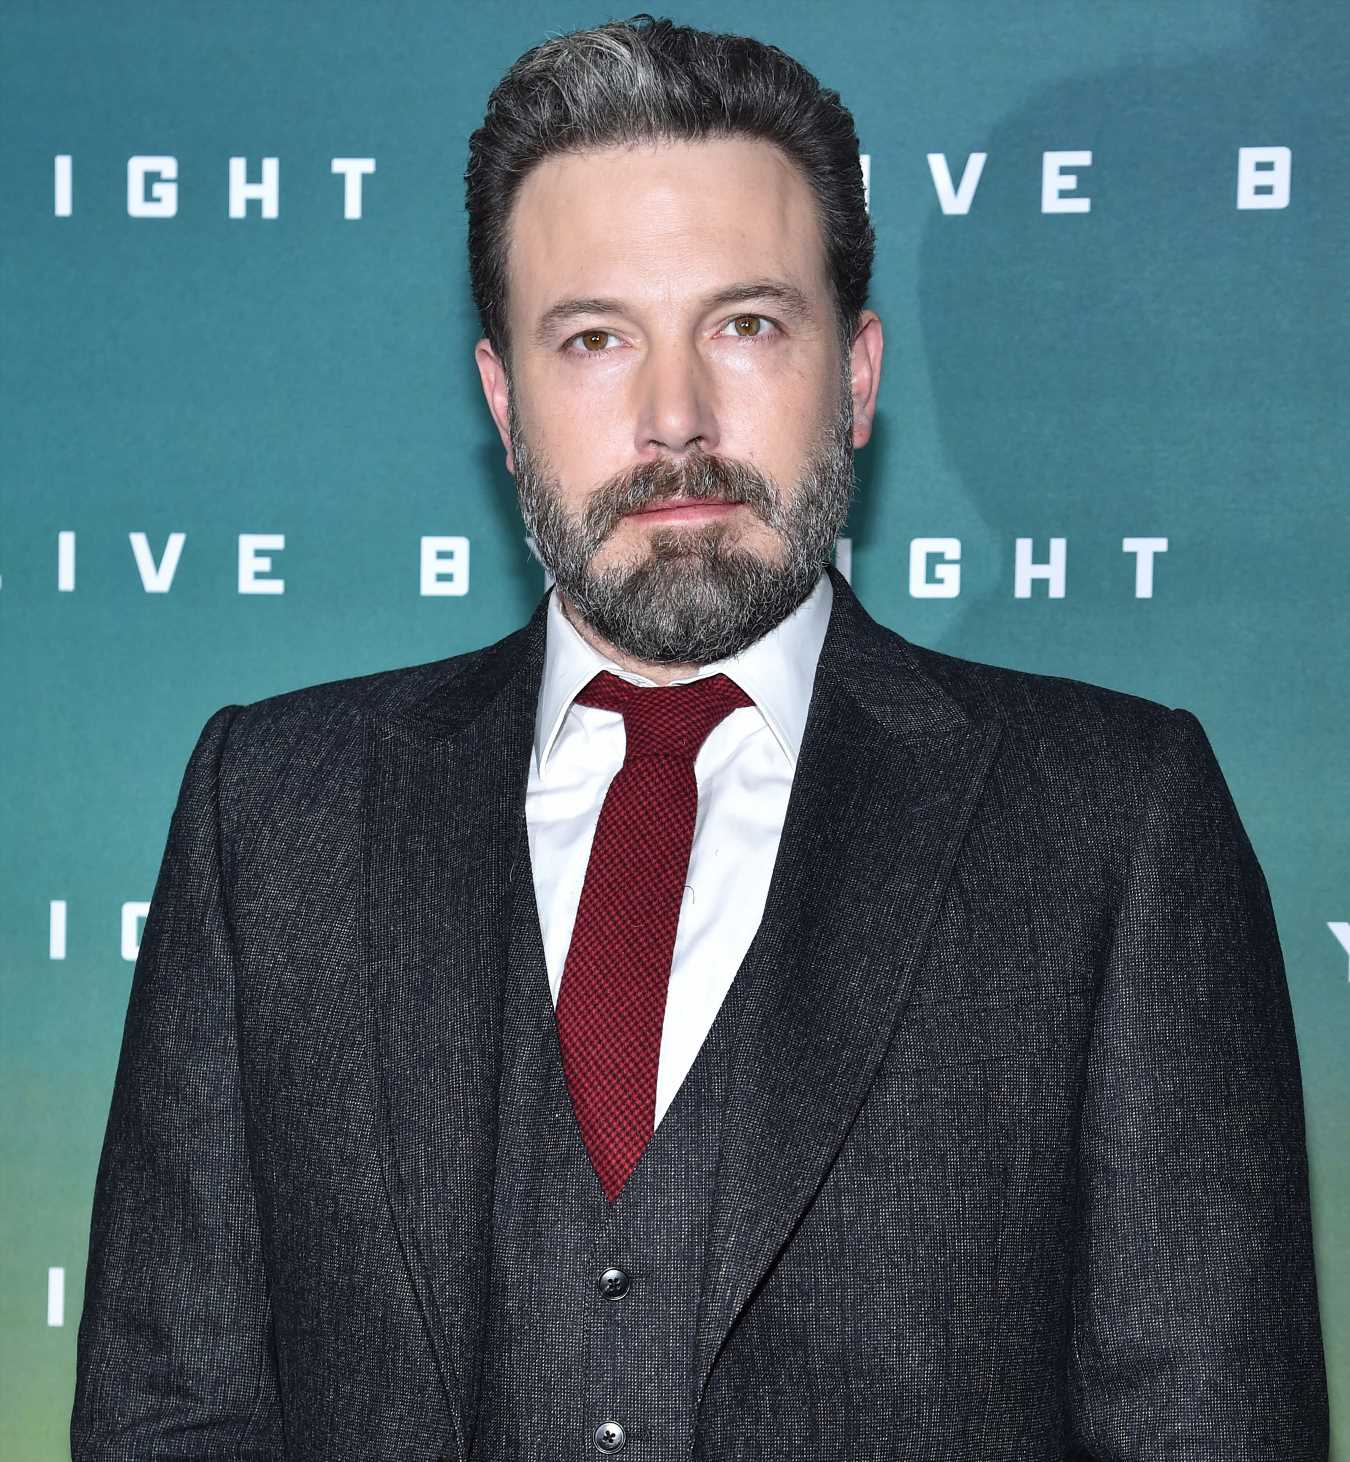 Ben Affleck Treats His 3 Kids and Mom Christine to Christmas Tree Shopping and Sweets in L.A.